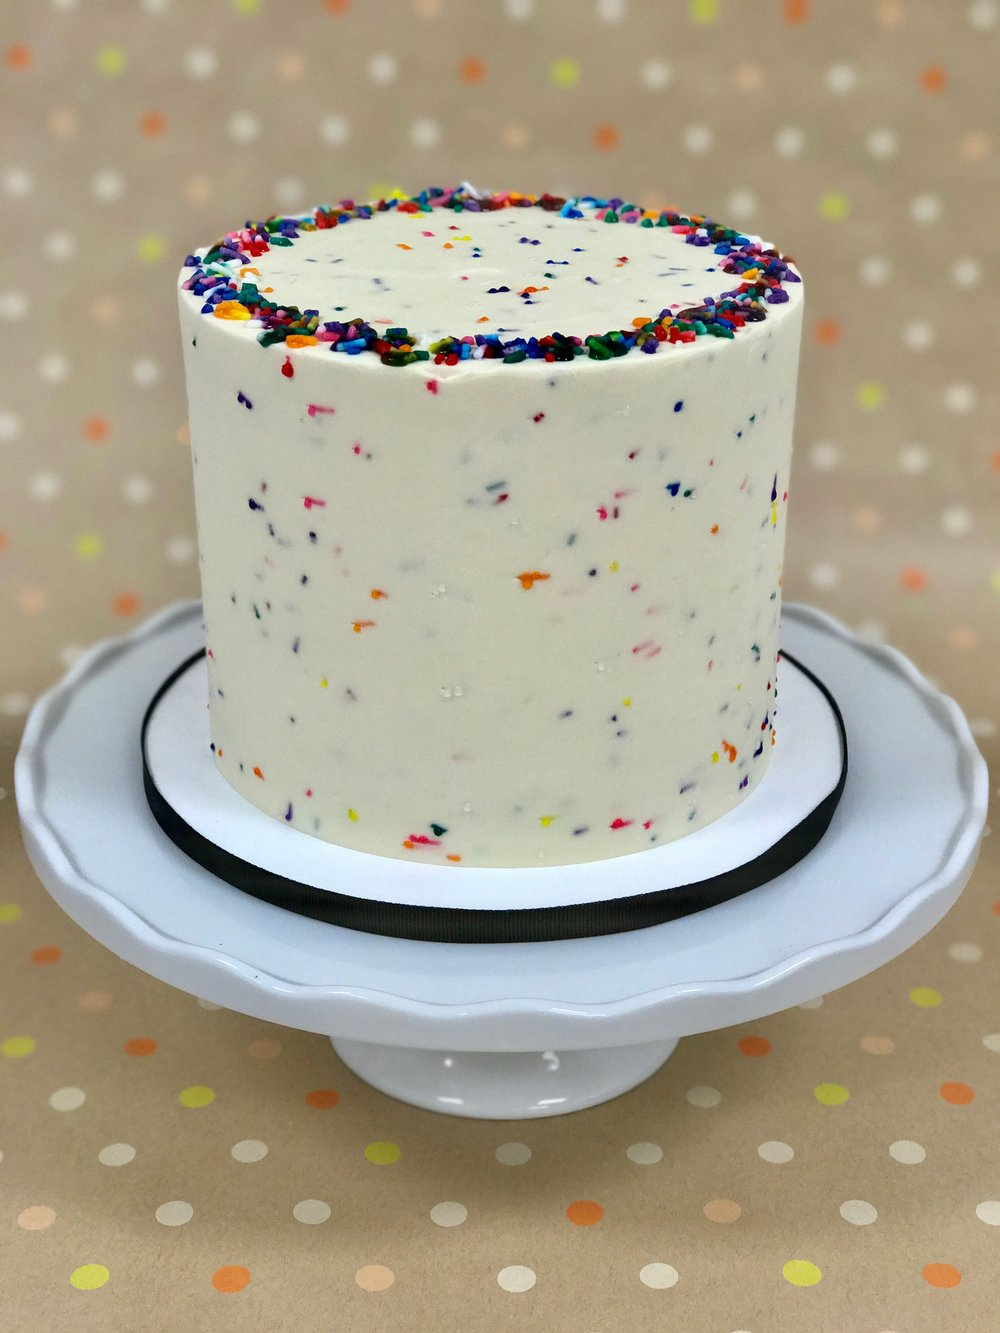 Confetti - Cake: Confetti (white cake with sprinkles)Filling: Confetti Swiss Meringue ButtercreamFrosting: Confetti Swiss Meringue Buttercream and Sprinkles